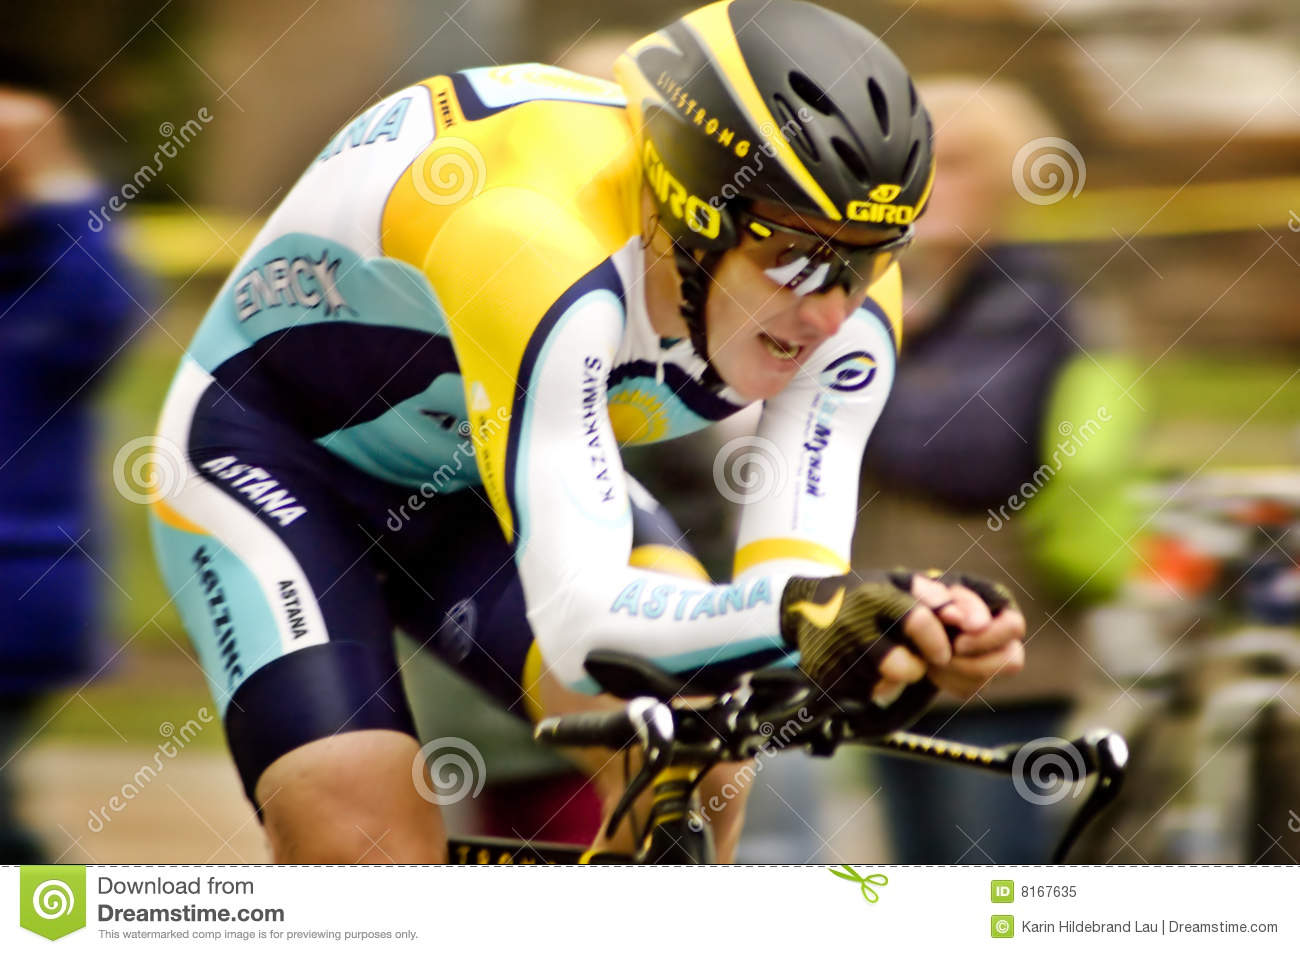 Lance Armstrong Editorial Image - Image: 8167635